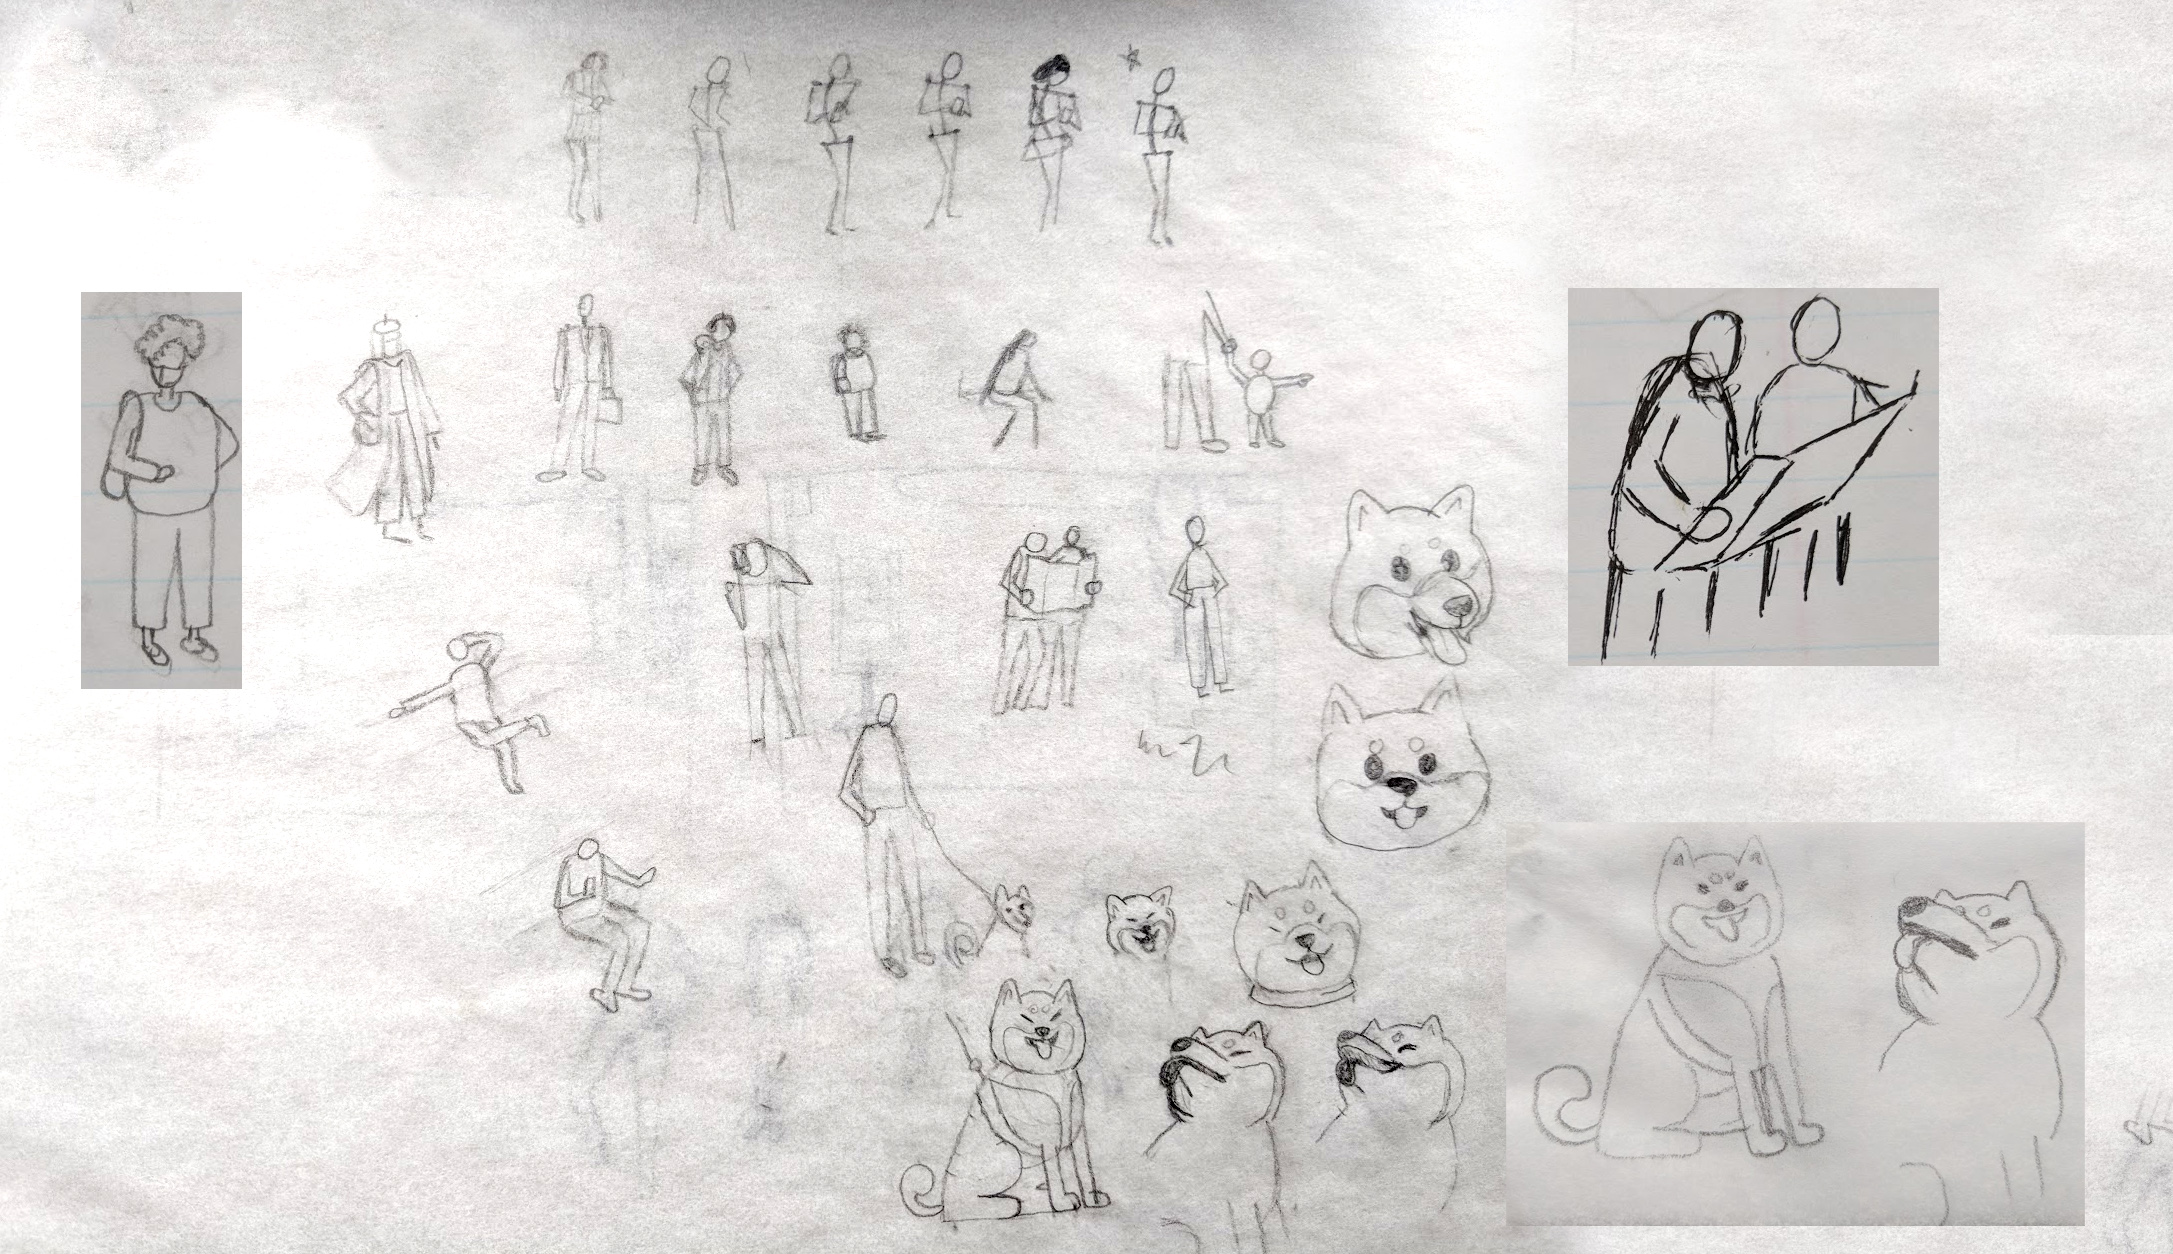 My initial crappy sketches. Take note of how much time I spent drawing the dog. This is simply because I am obsessed with Shiba Inus. No more, no less.